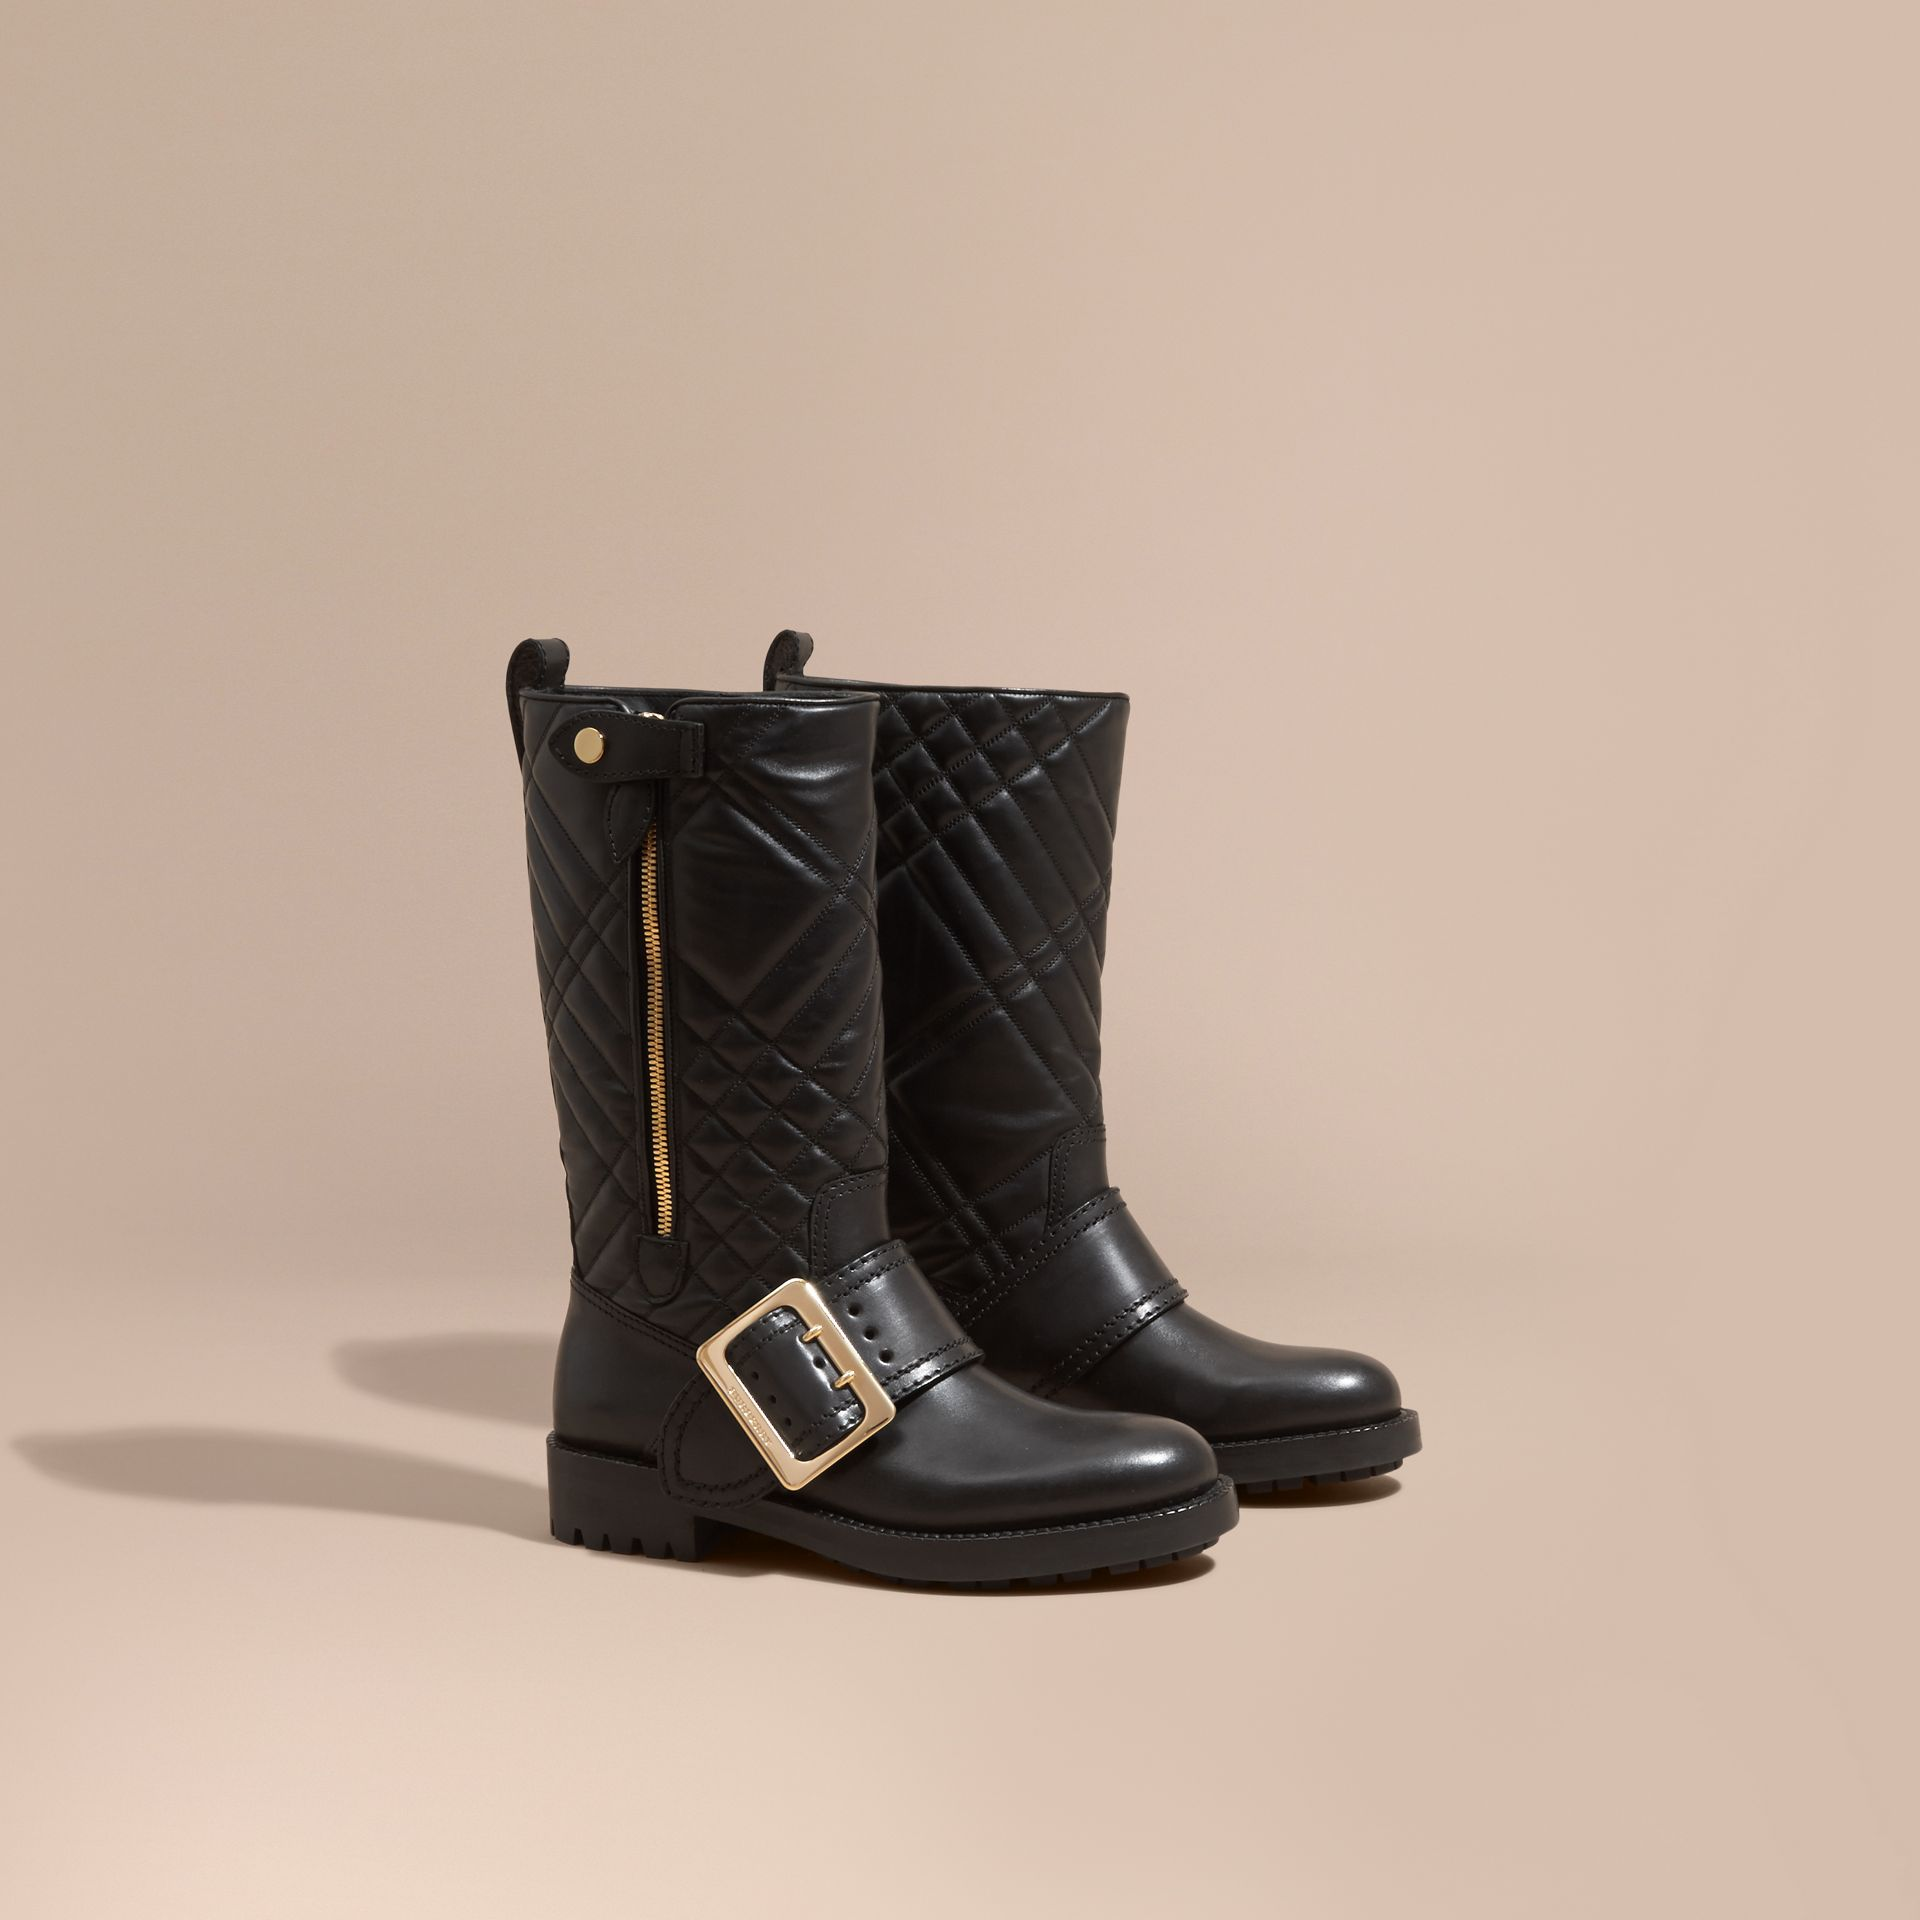 Buckle Detail Check Quilted Leather Boots - Women | Burberry - gallery image 1